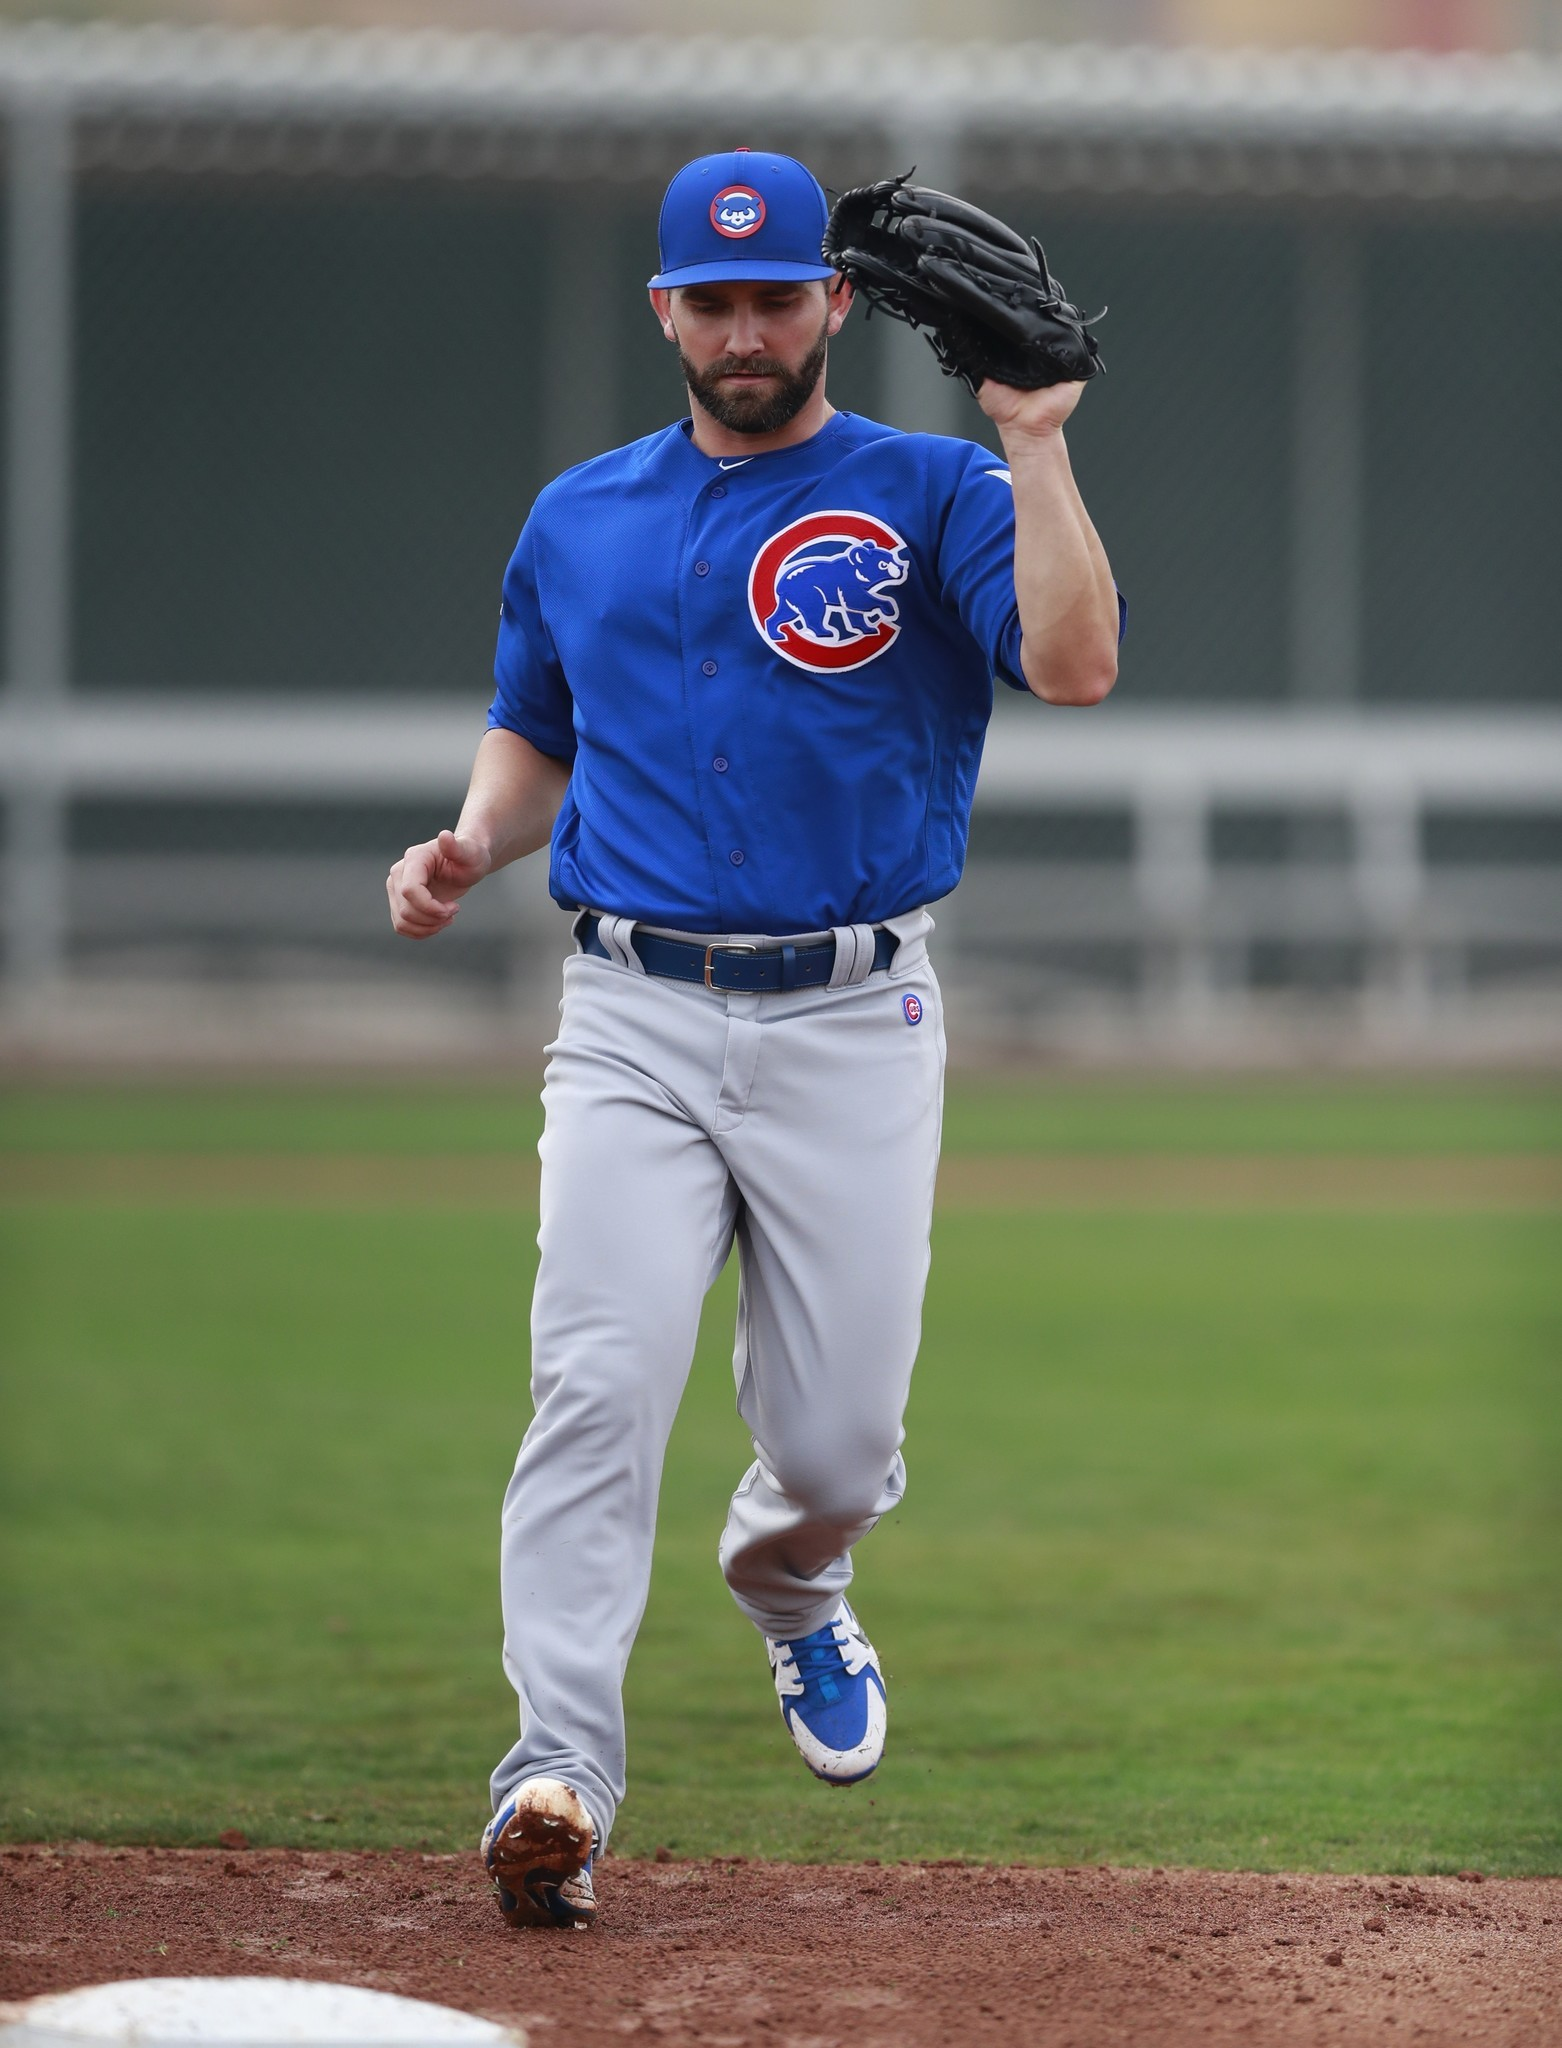 Ct-spt-cubs-padres-spring-game-20180308